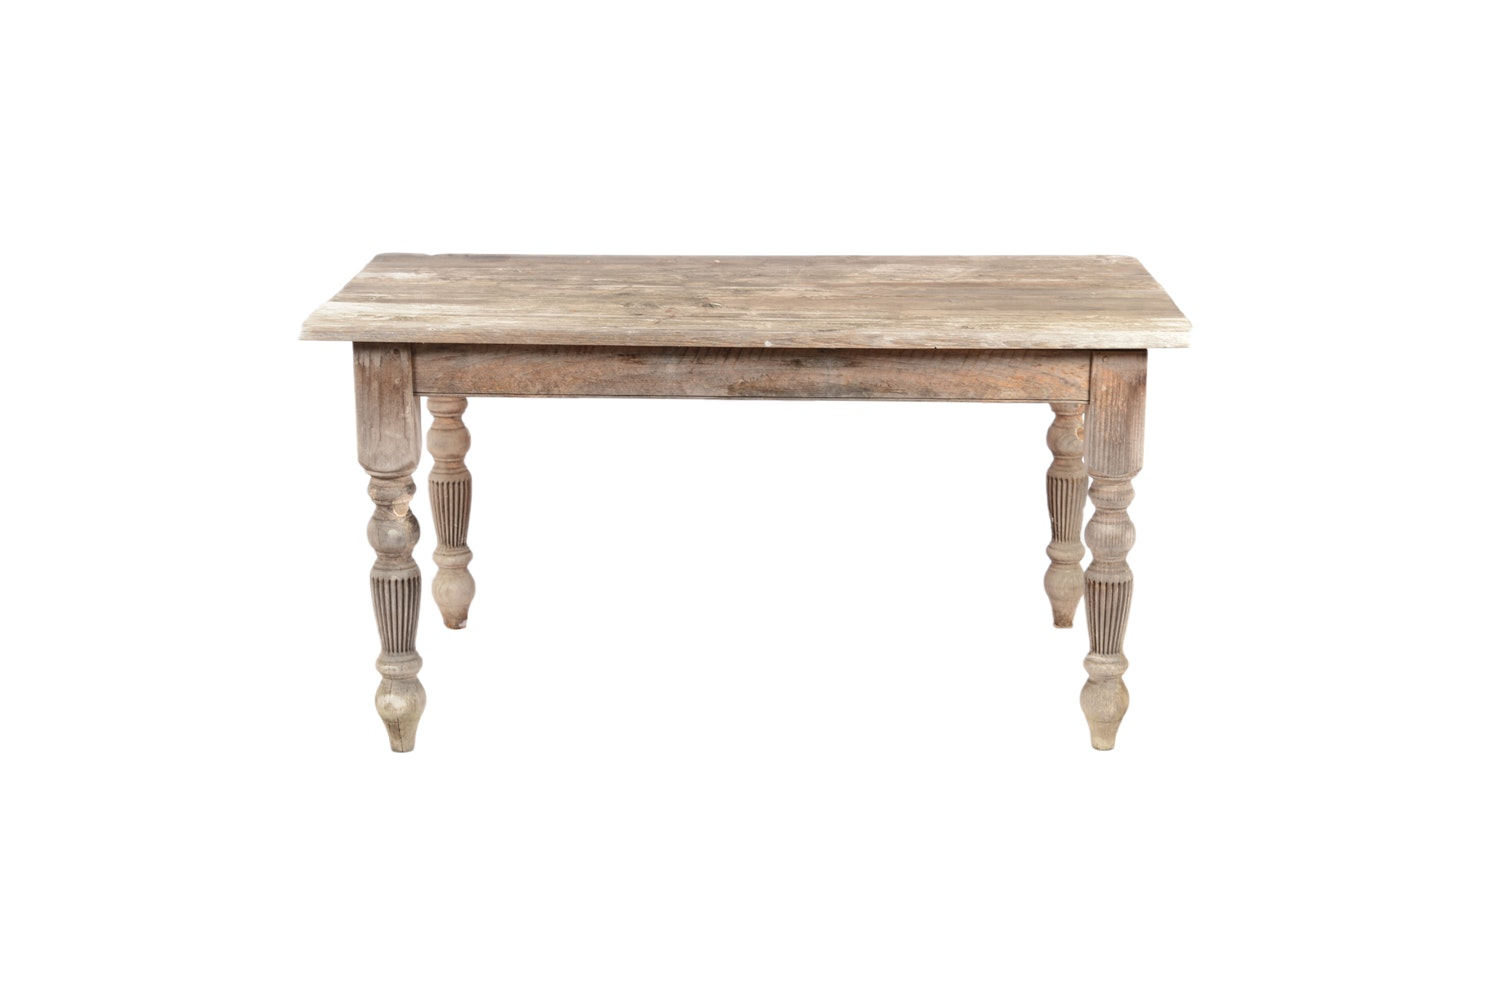 Pickled Pine Dining Table, 20th Century